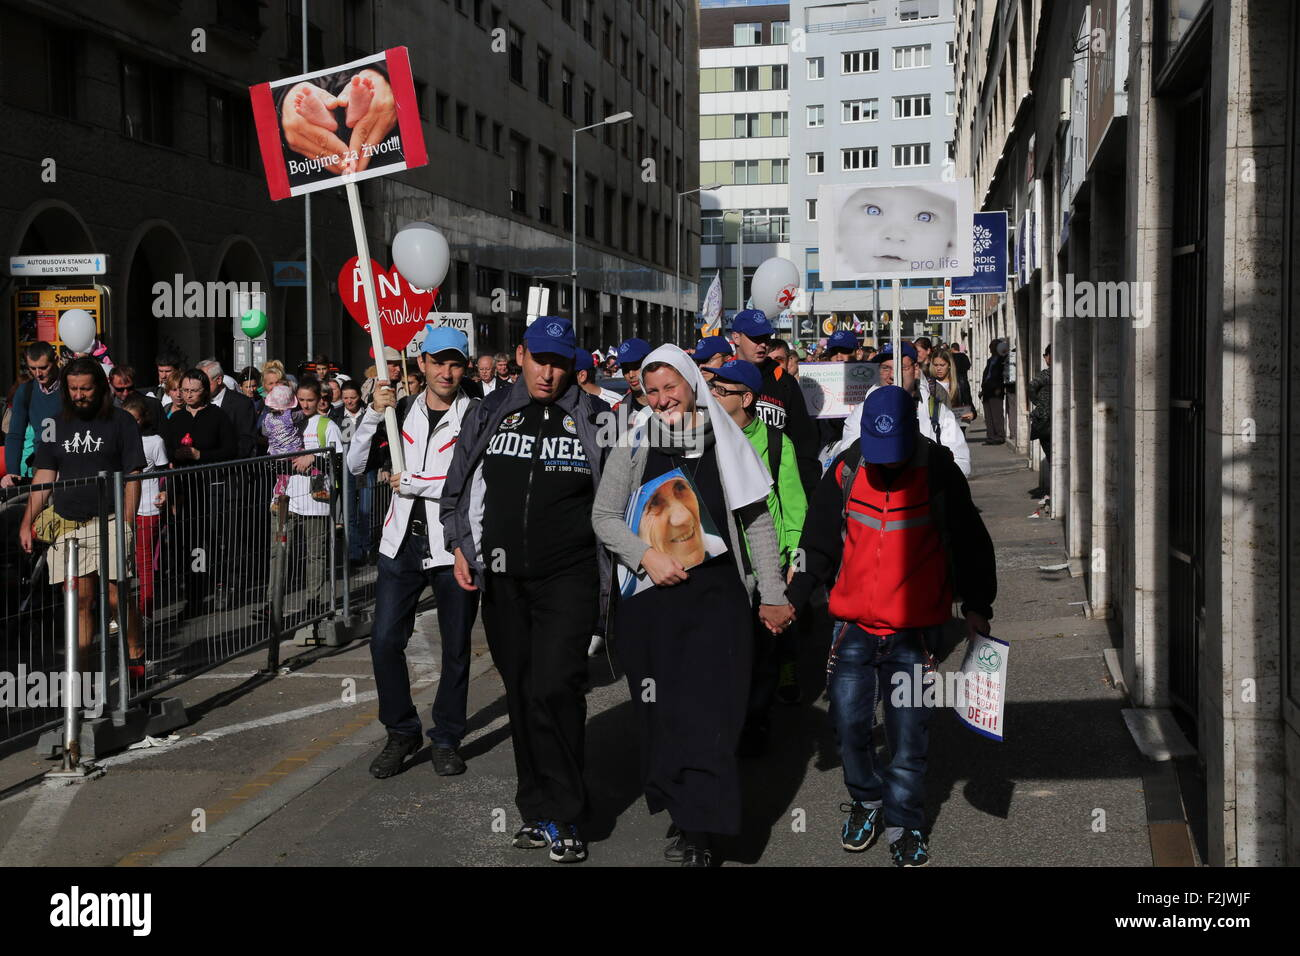 Bratislava, Slovakia. 20th Sep, 2015. People take part in the National March for Life in Bratislava, Slovakia, Sept. - Stock Image